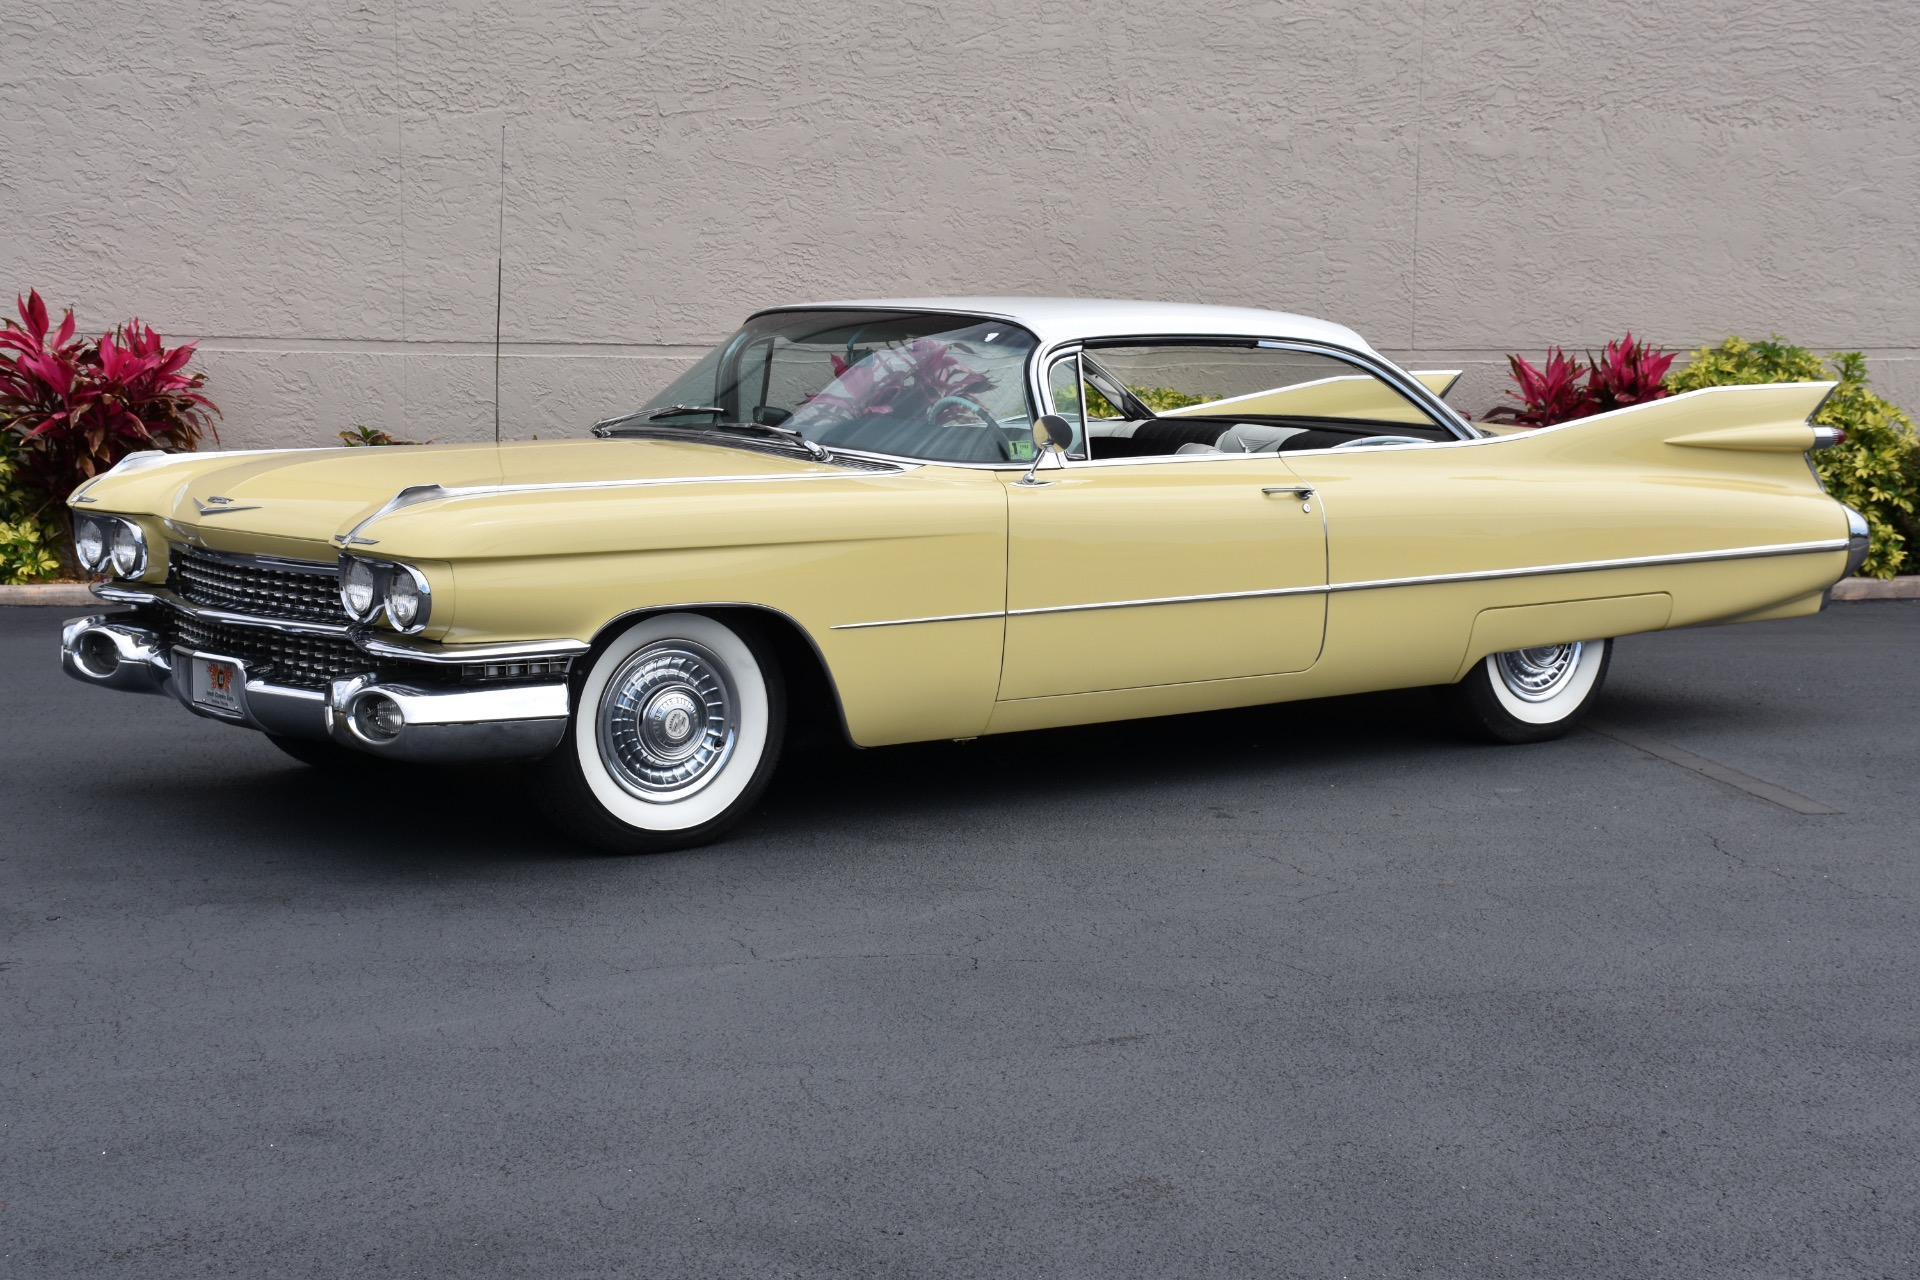 Used 1959 Cadillac Coupe Deville 390CI V8 50K Believed Original ...